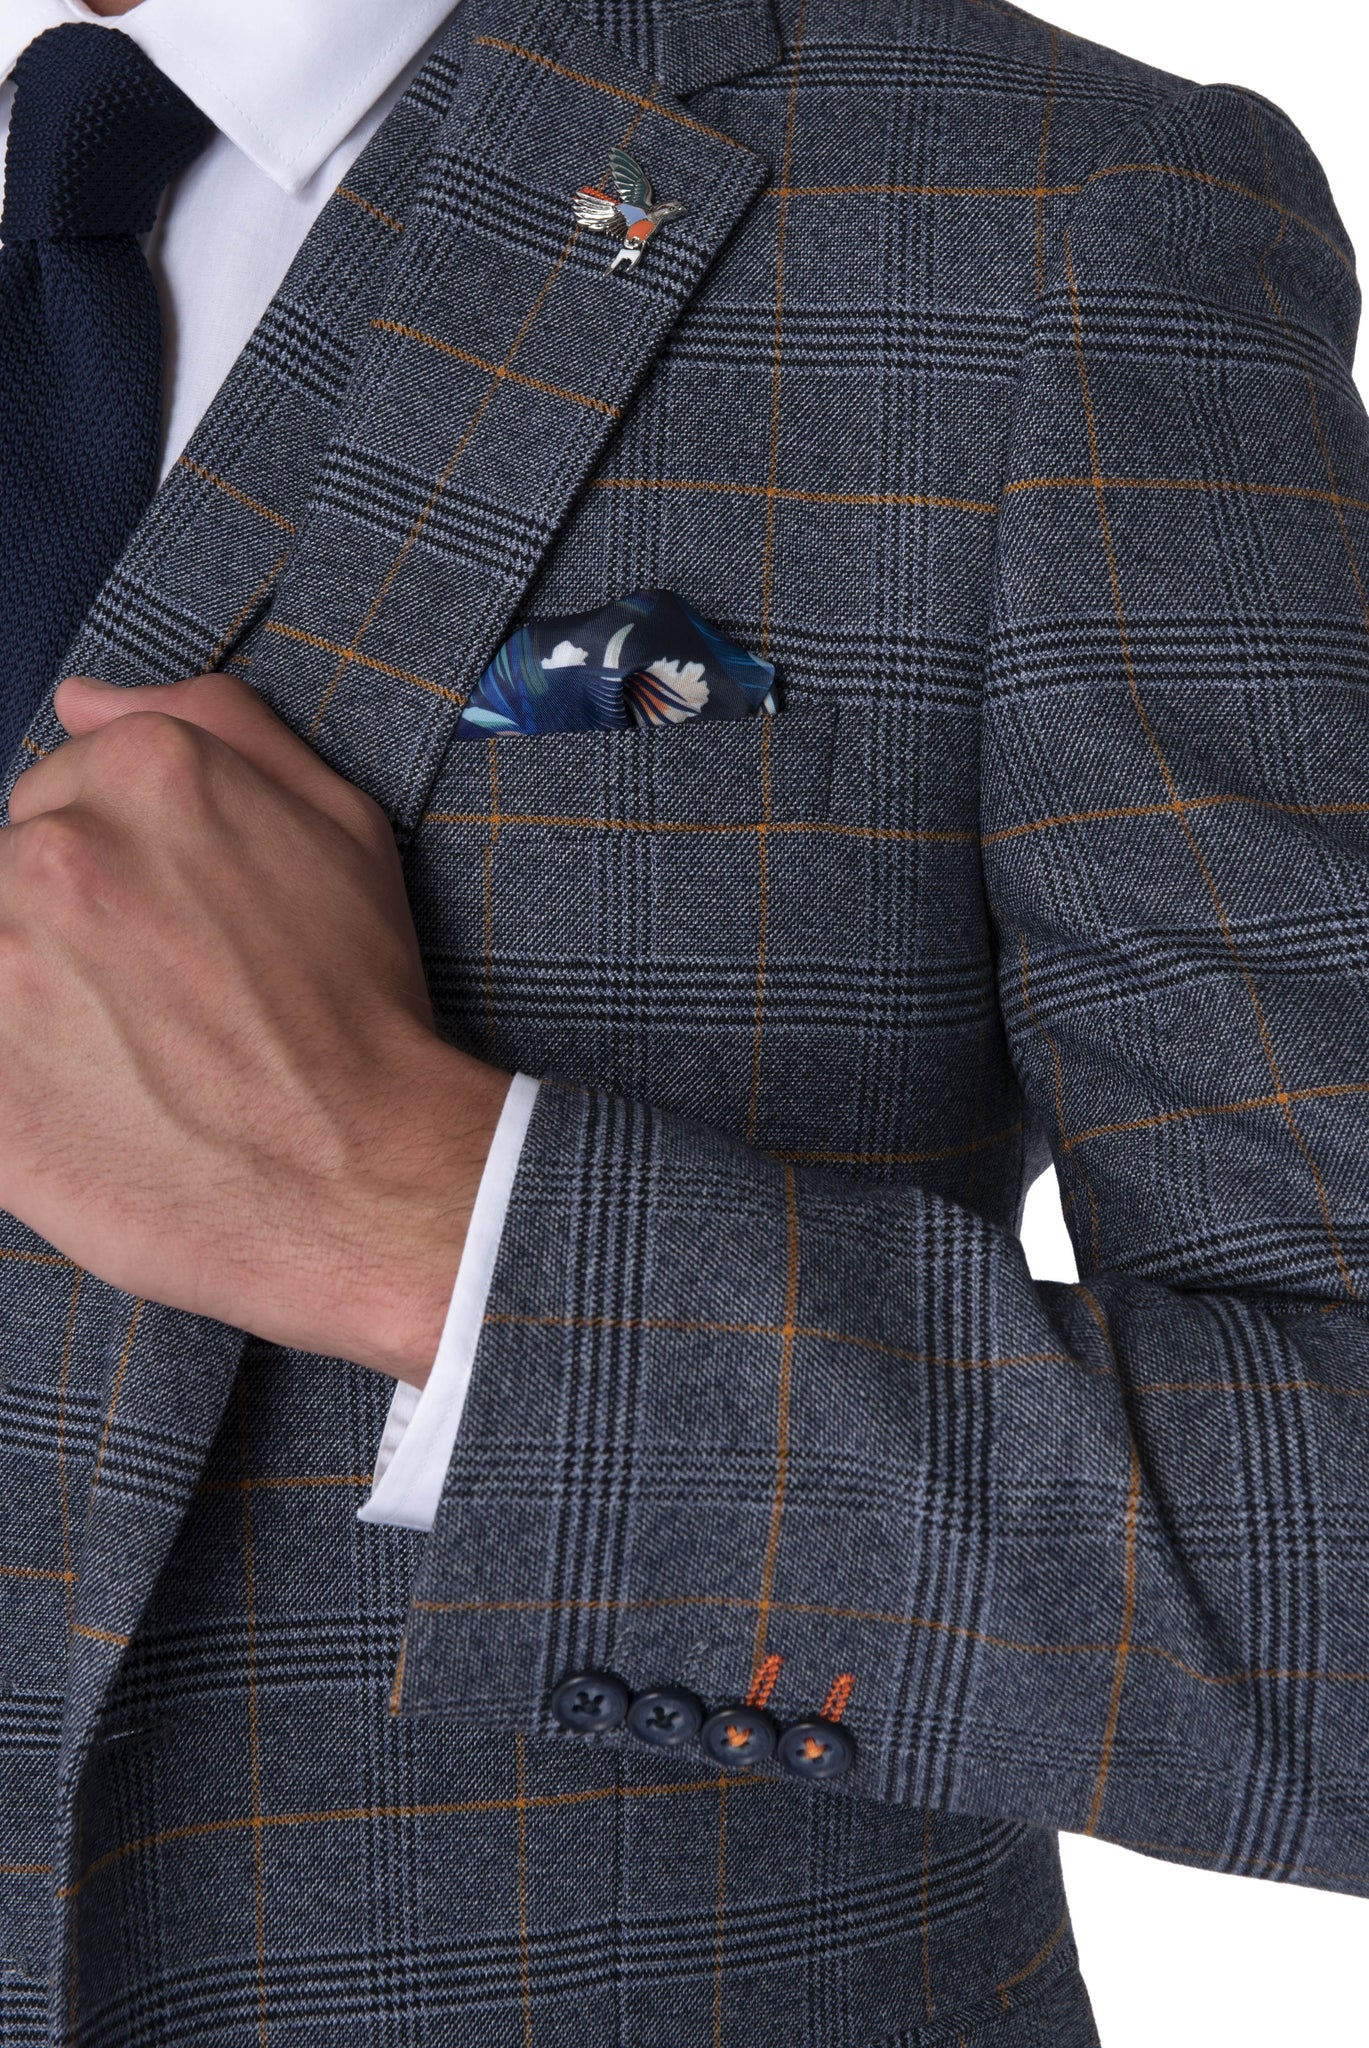 Lapel & cuff of CALLUM Grey & Orange Check Three Piece Suit